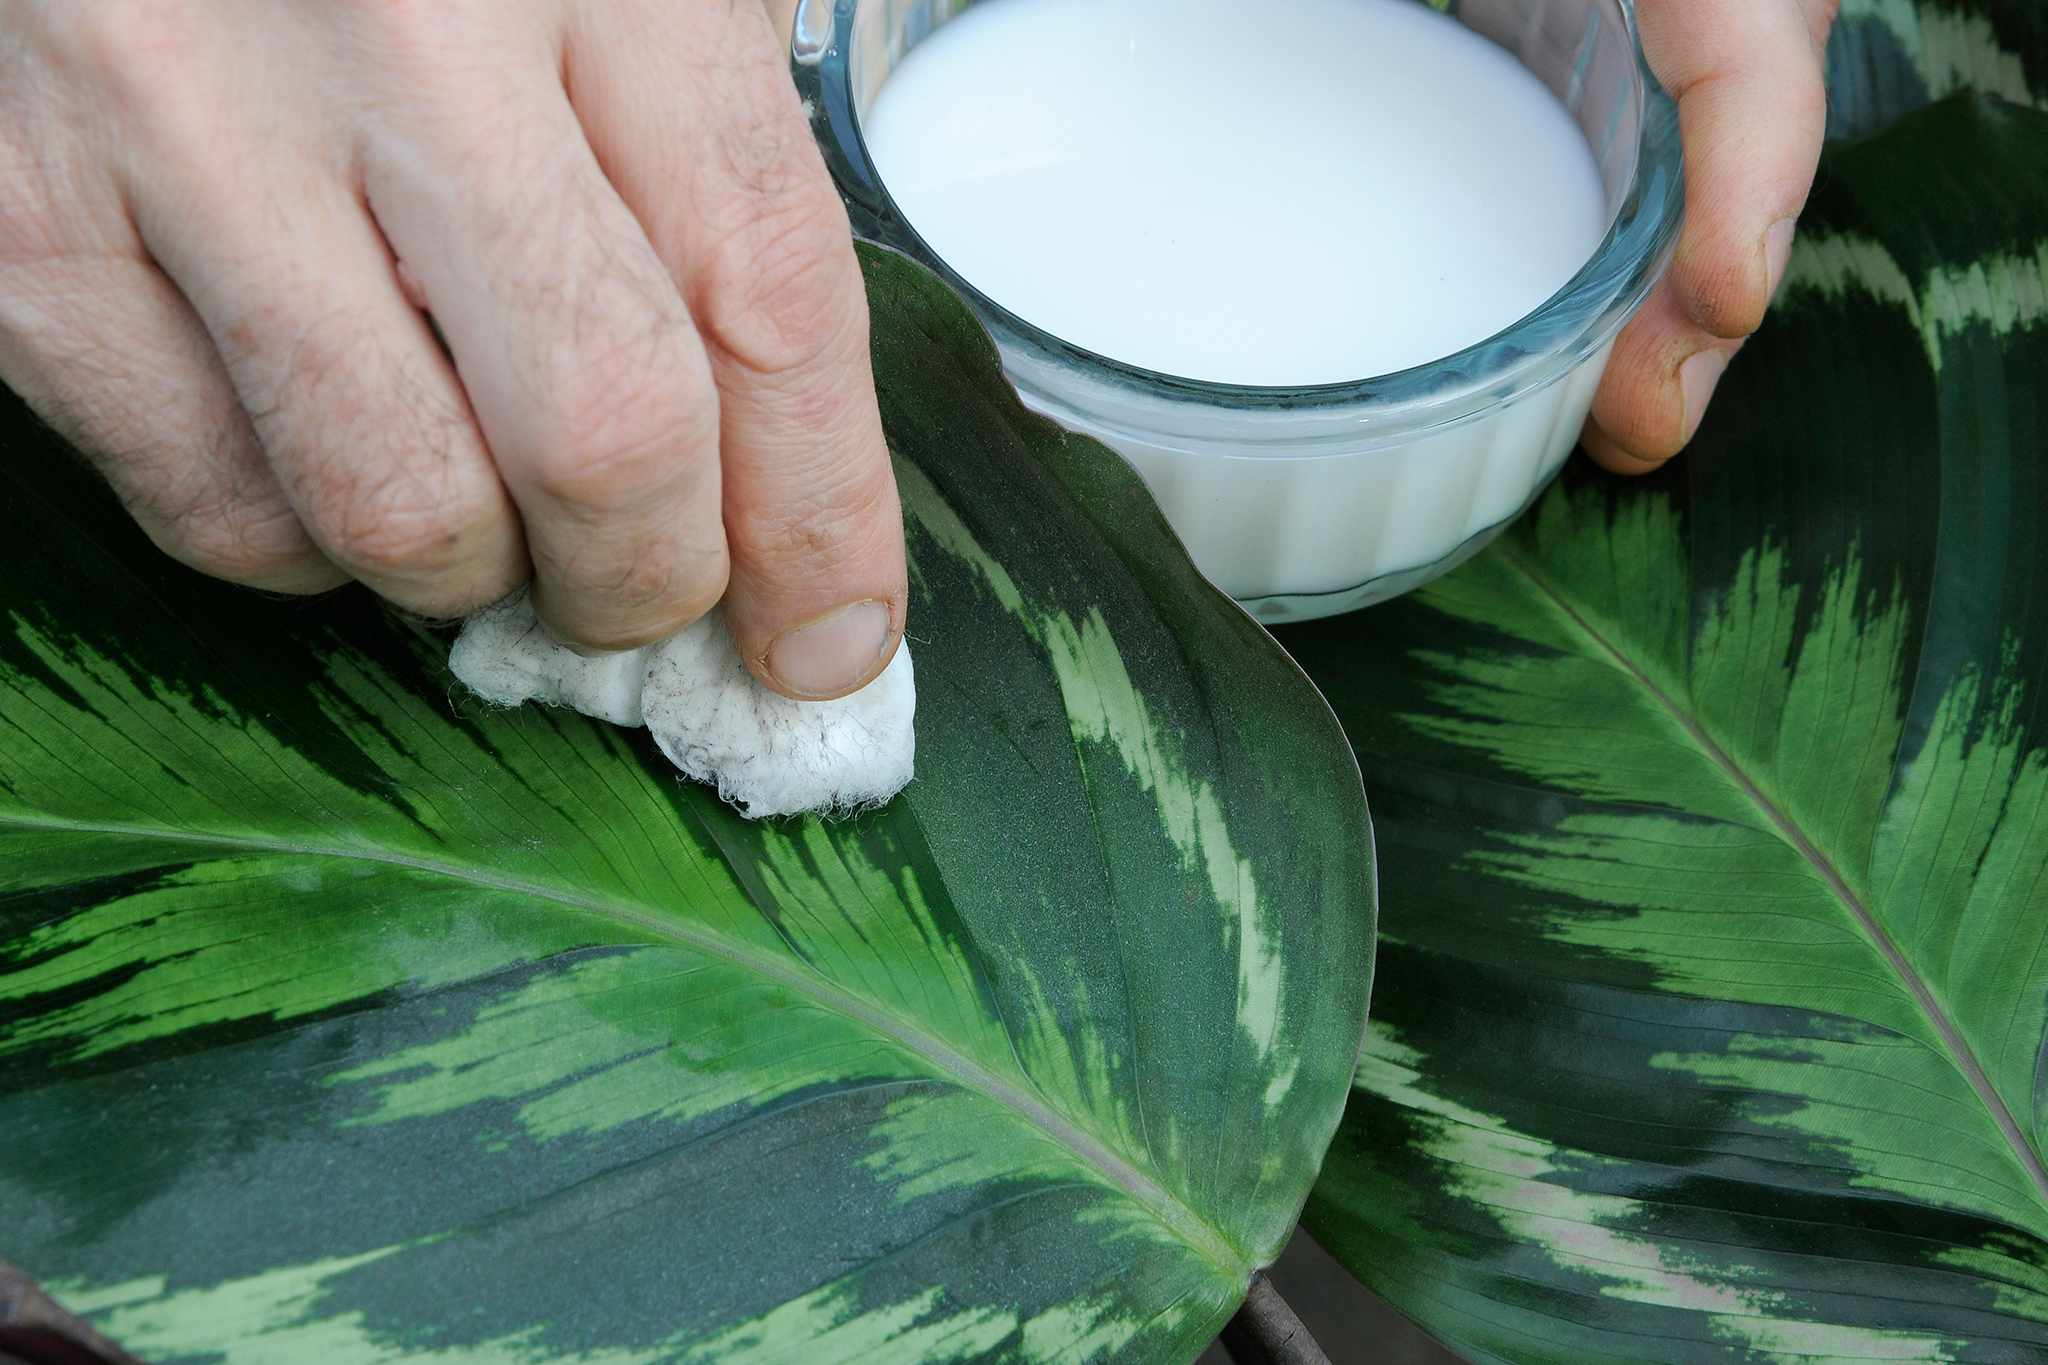 Cleaning a houseplant leaf with cotton wool soaked in a cleaning product